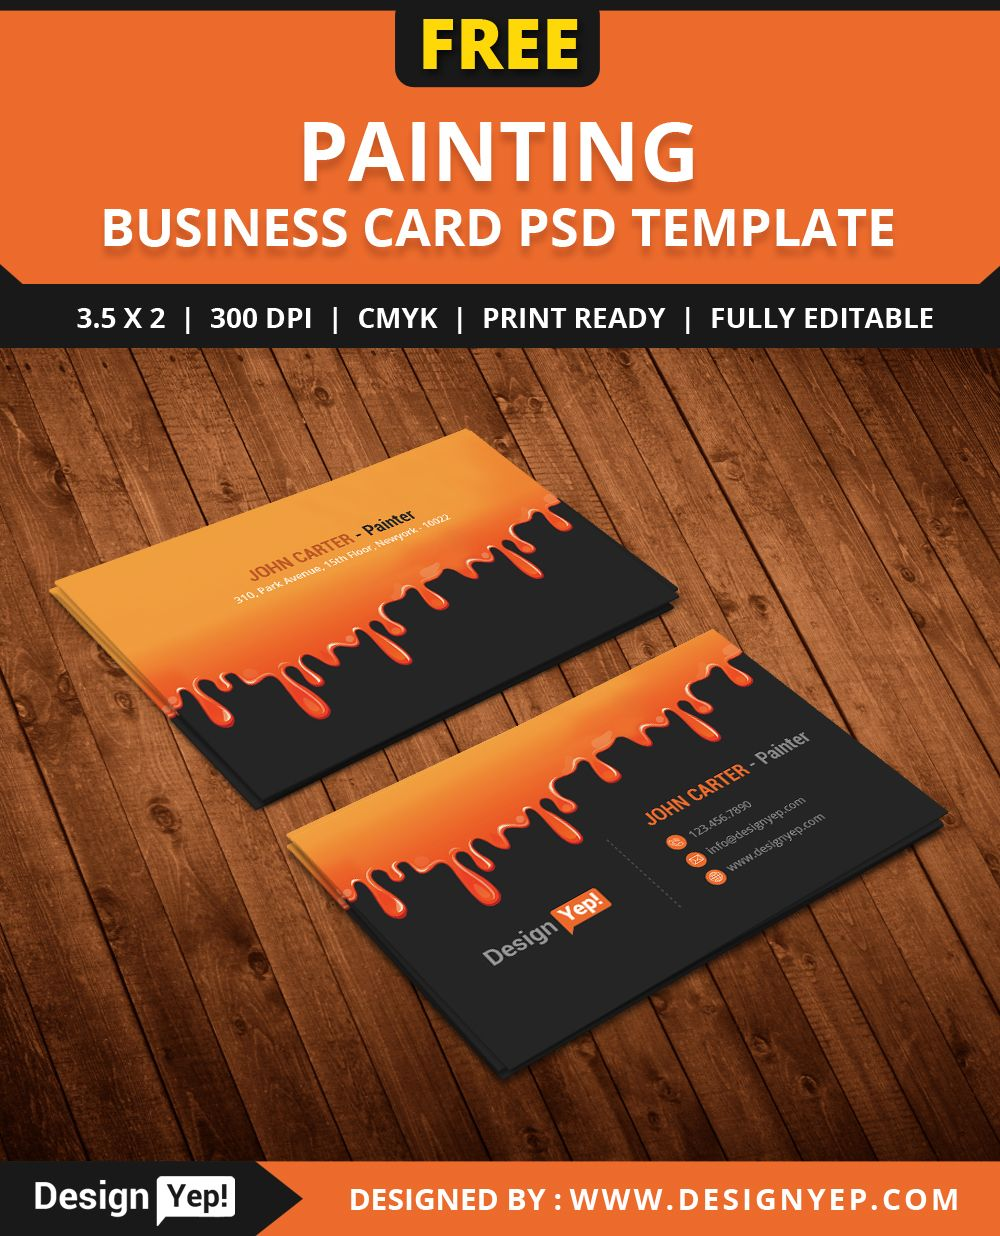 Free painting business card psd template free business card free painting business card psd template fbccfo Choice Image